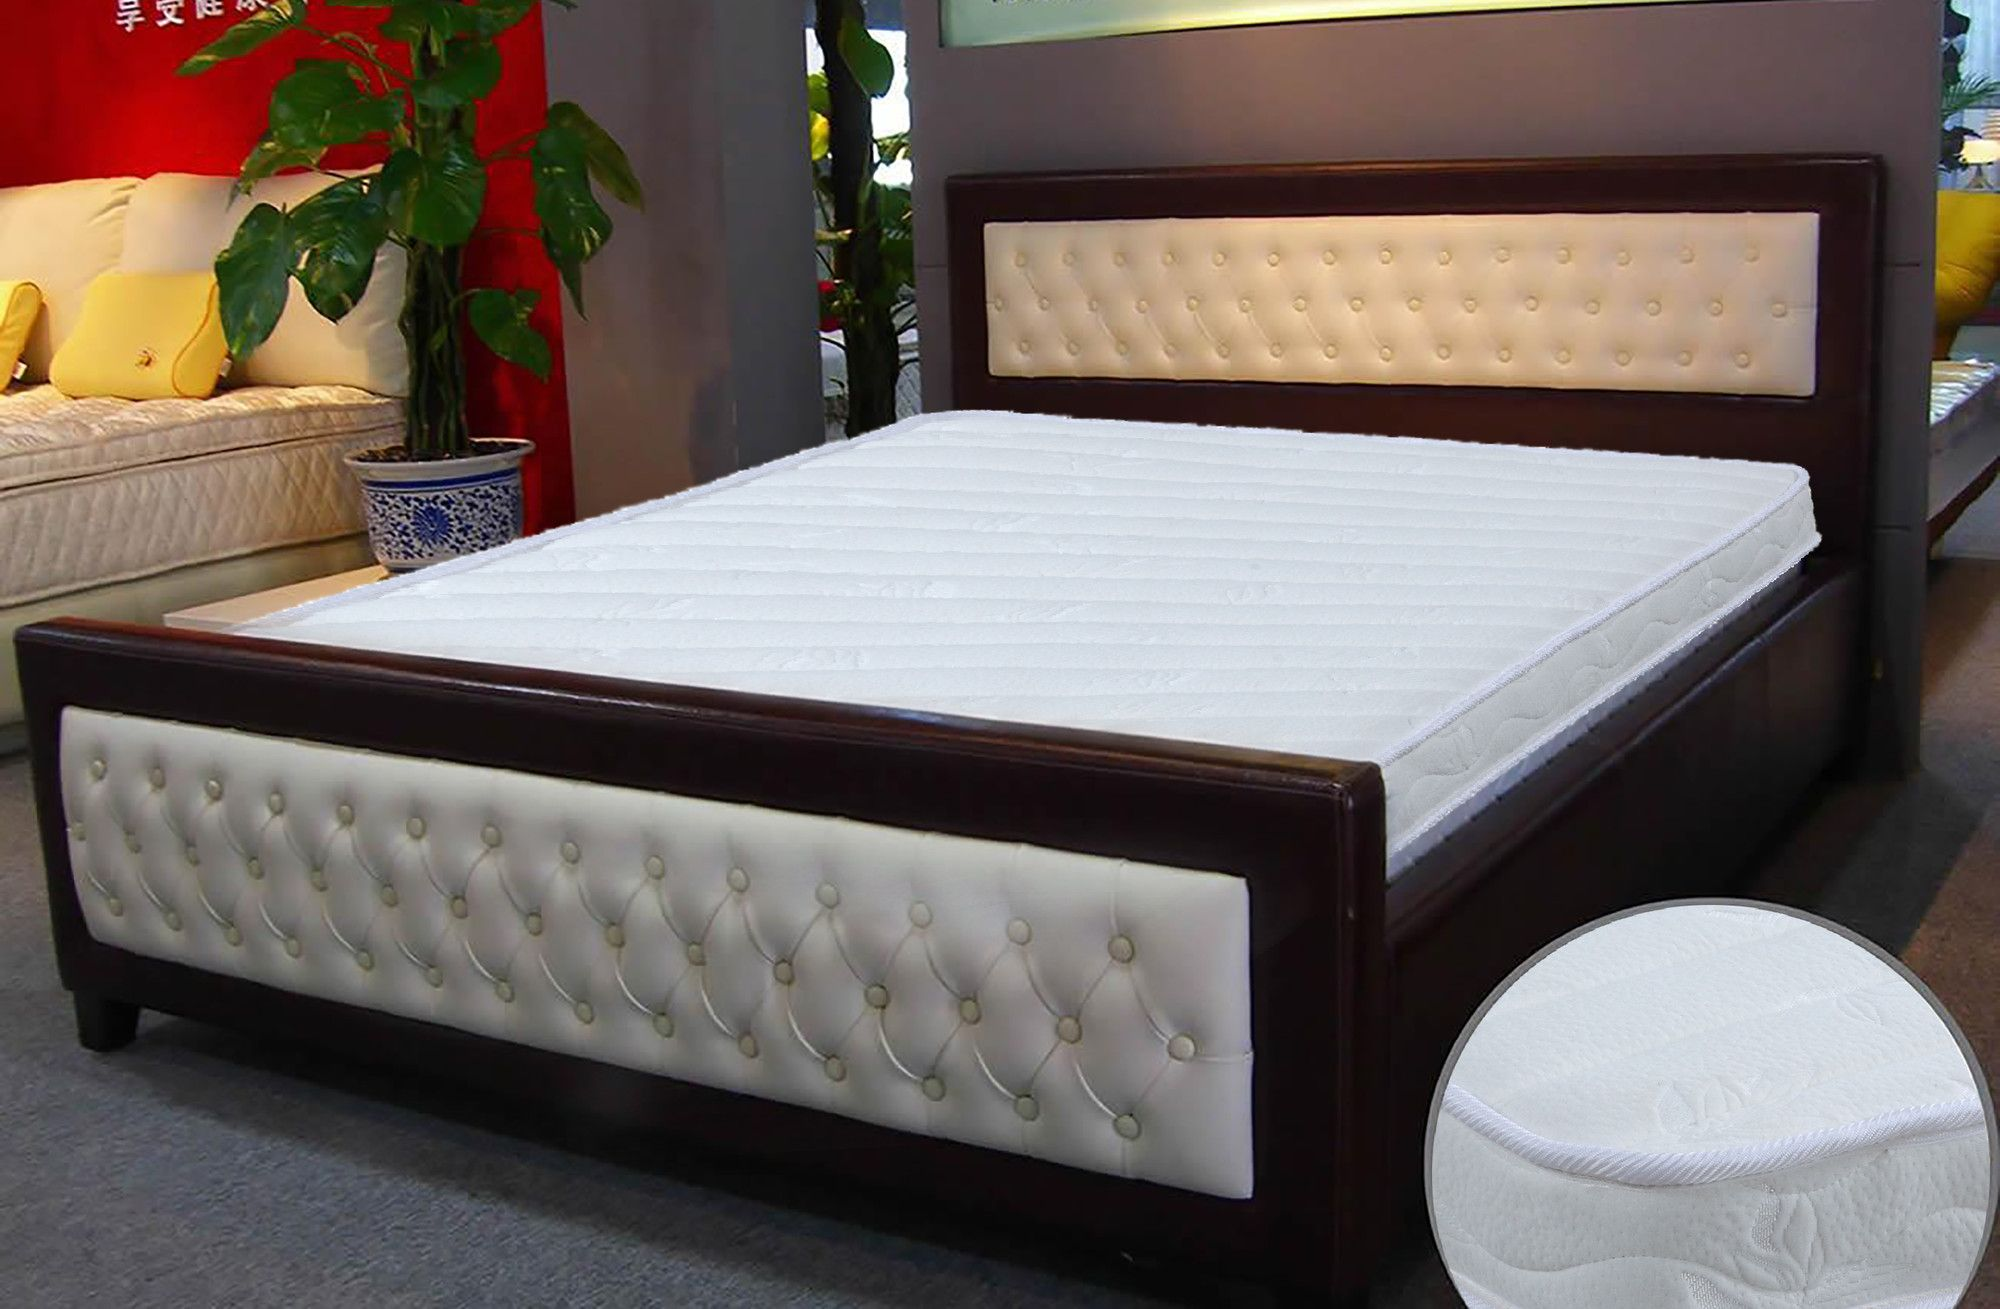 4 Medium Memory Foam Mattress Bedroom Bed Design Bedroom